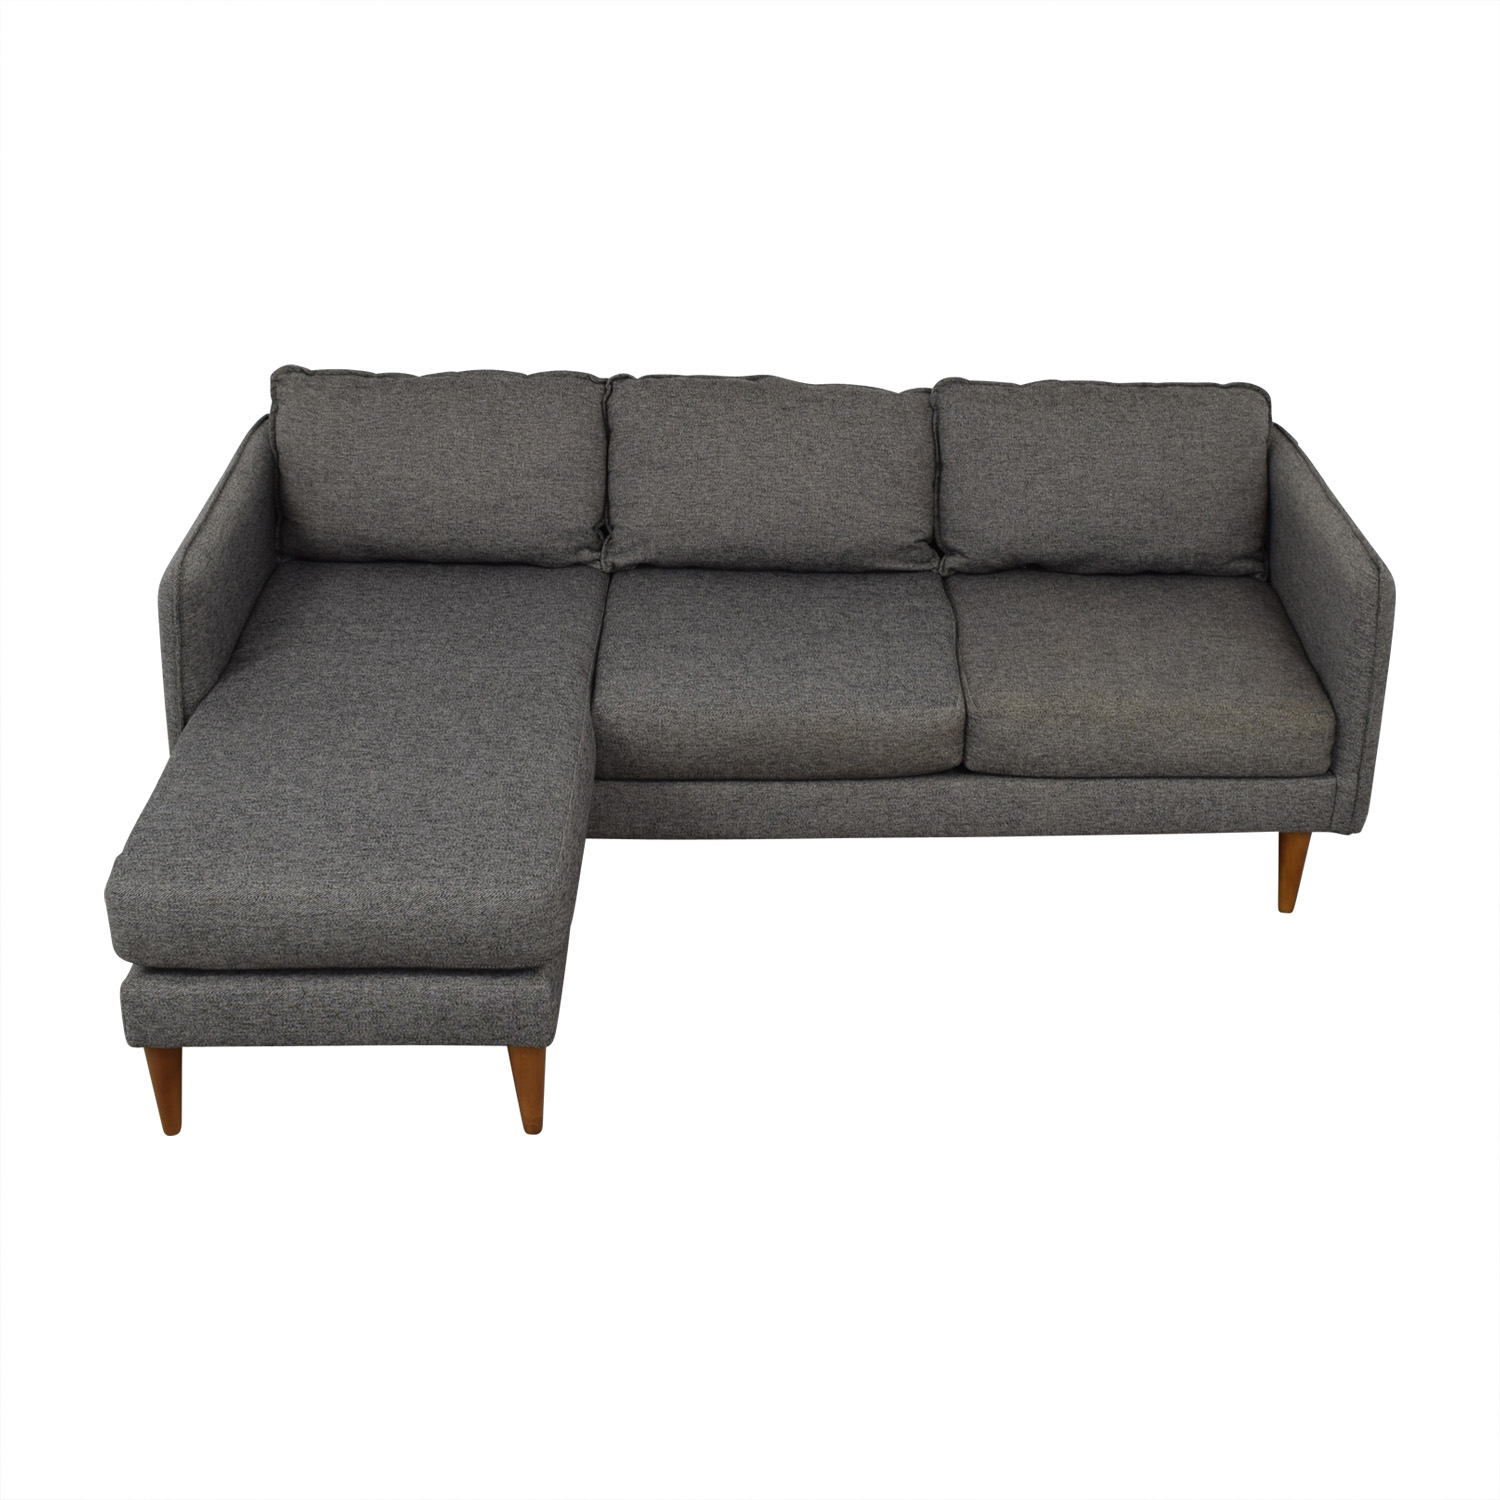 West Elm West Elm Quinn Grey Chaise Sectional used